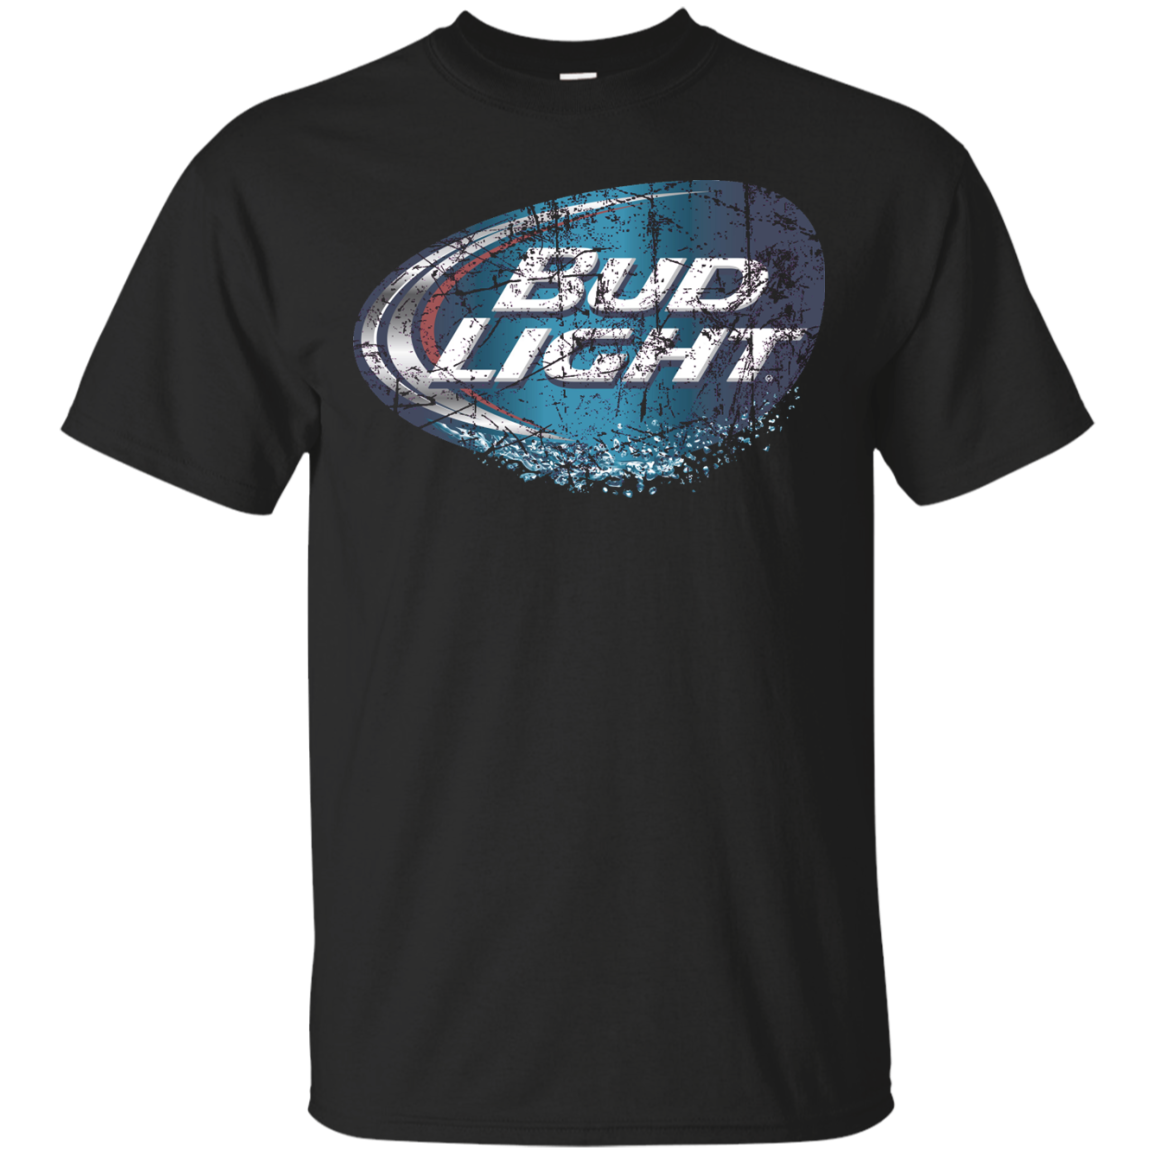 Bud Light Beer T Shirt Custom Designed Worn Label Pattern